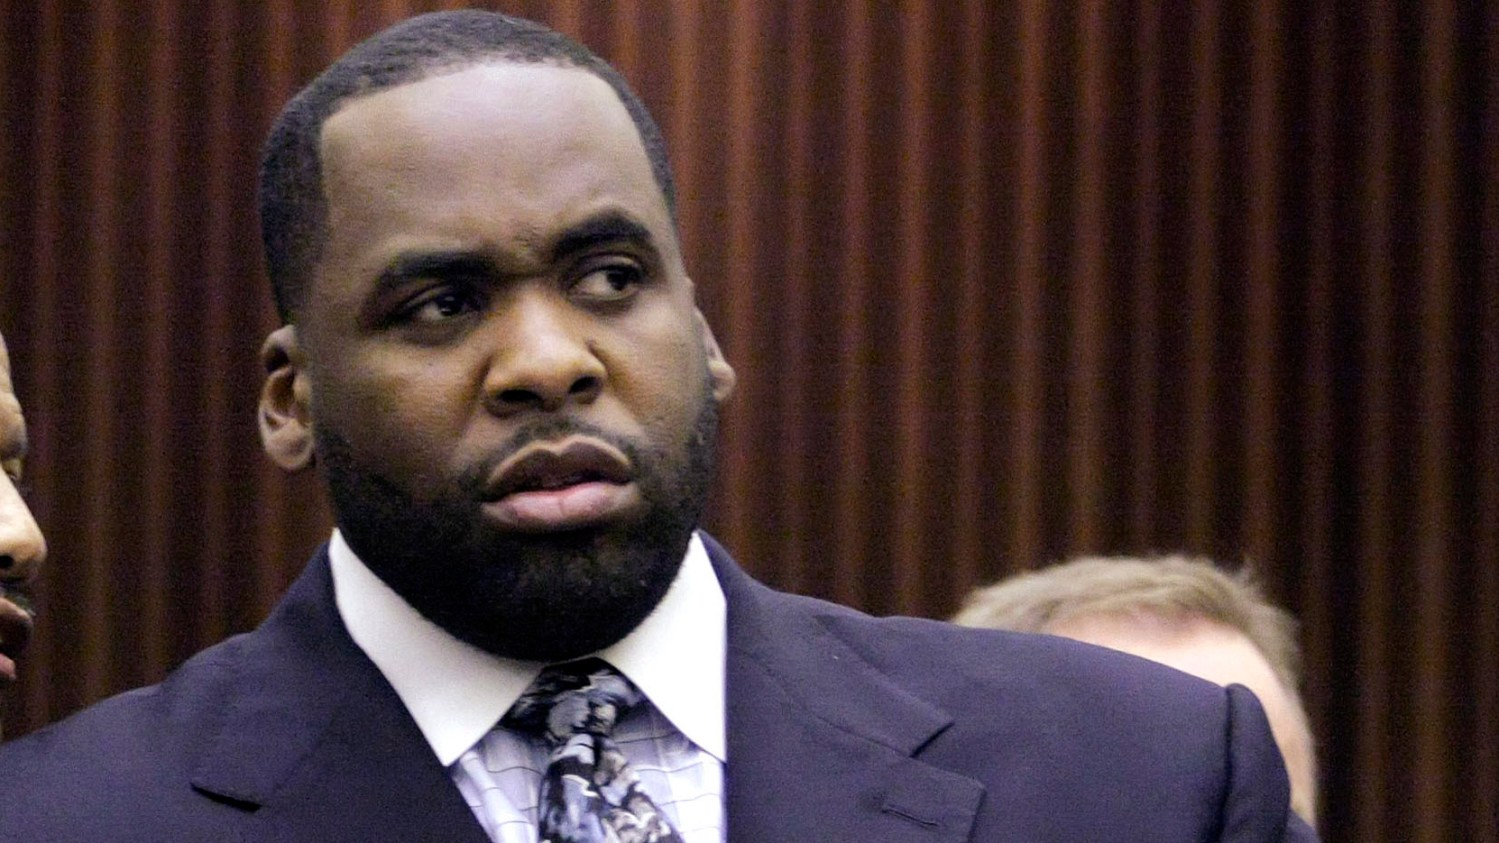 Kwame Kilpatrick Files Last Ditch Motion To Overturn